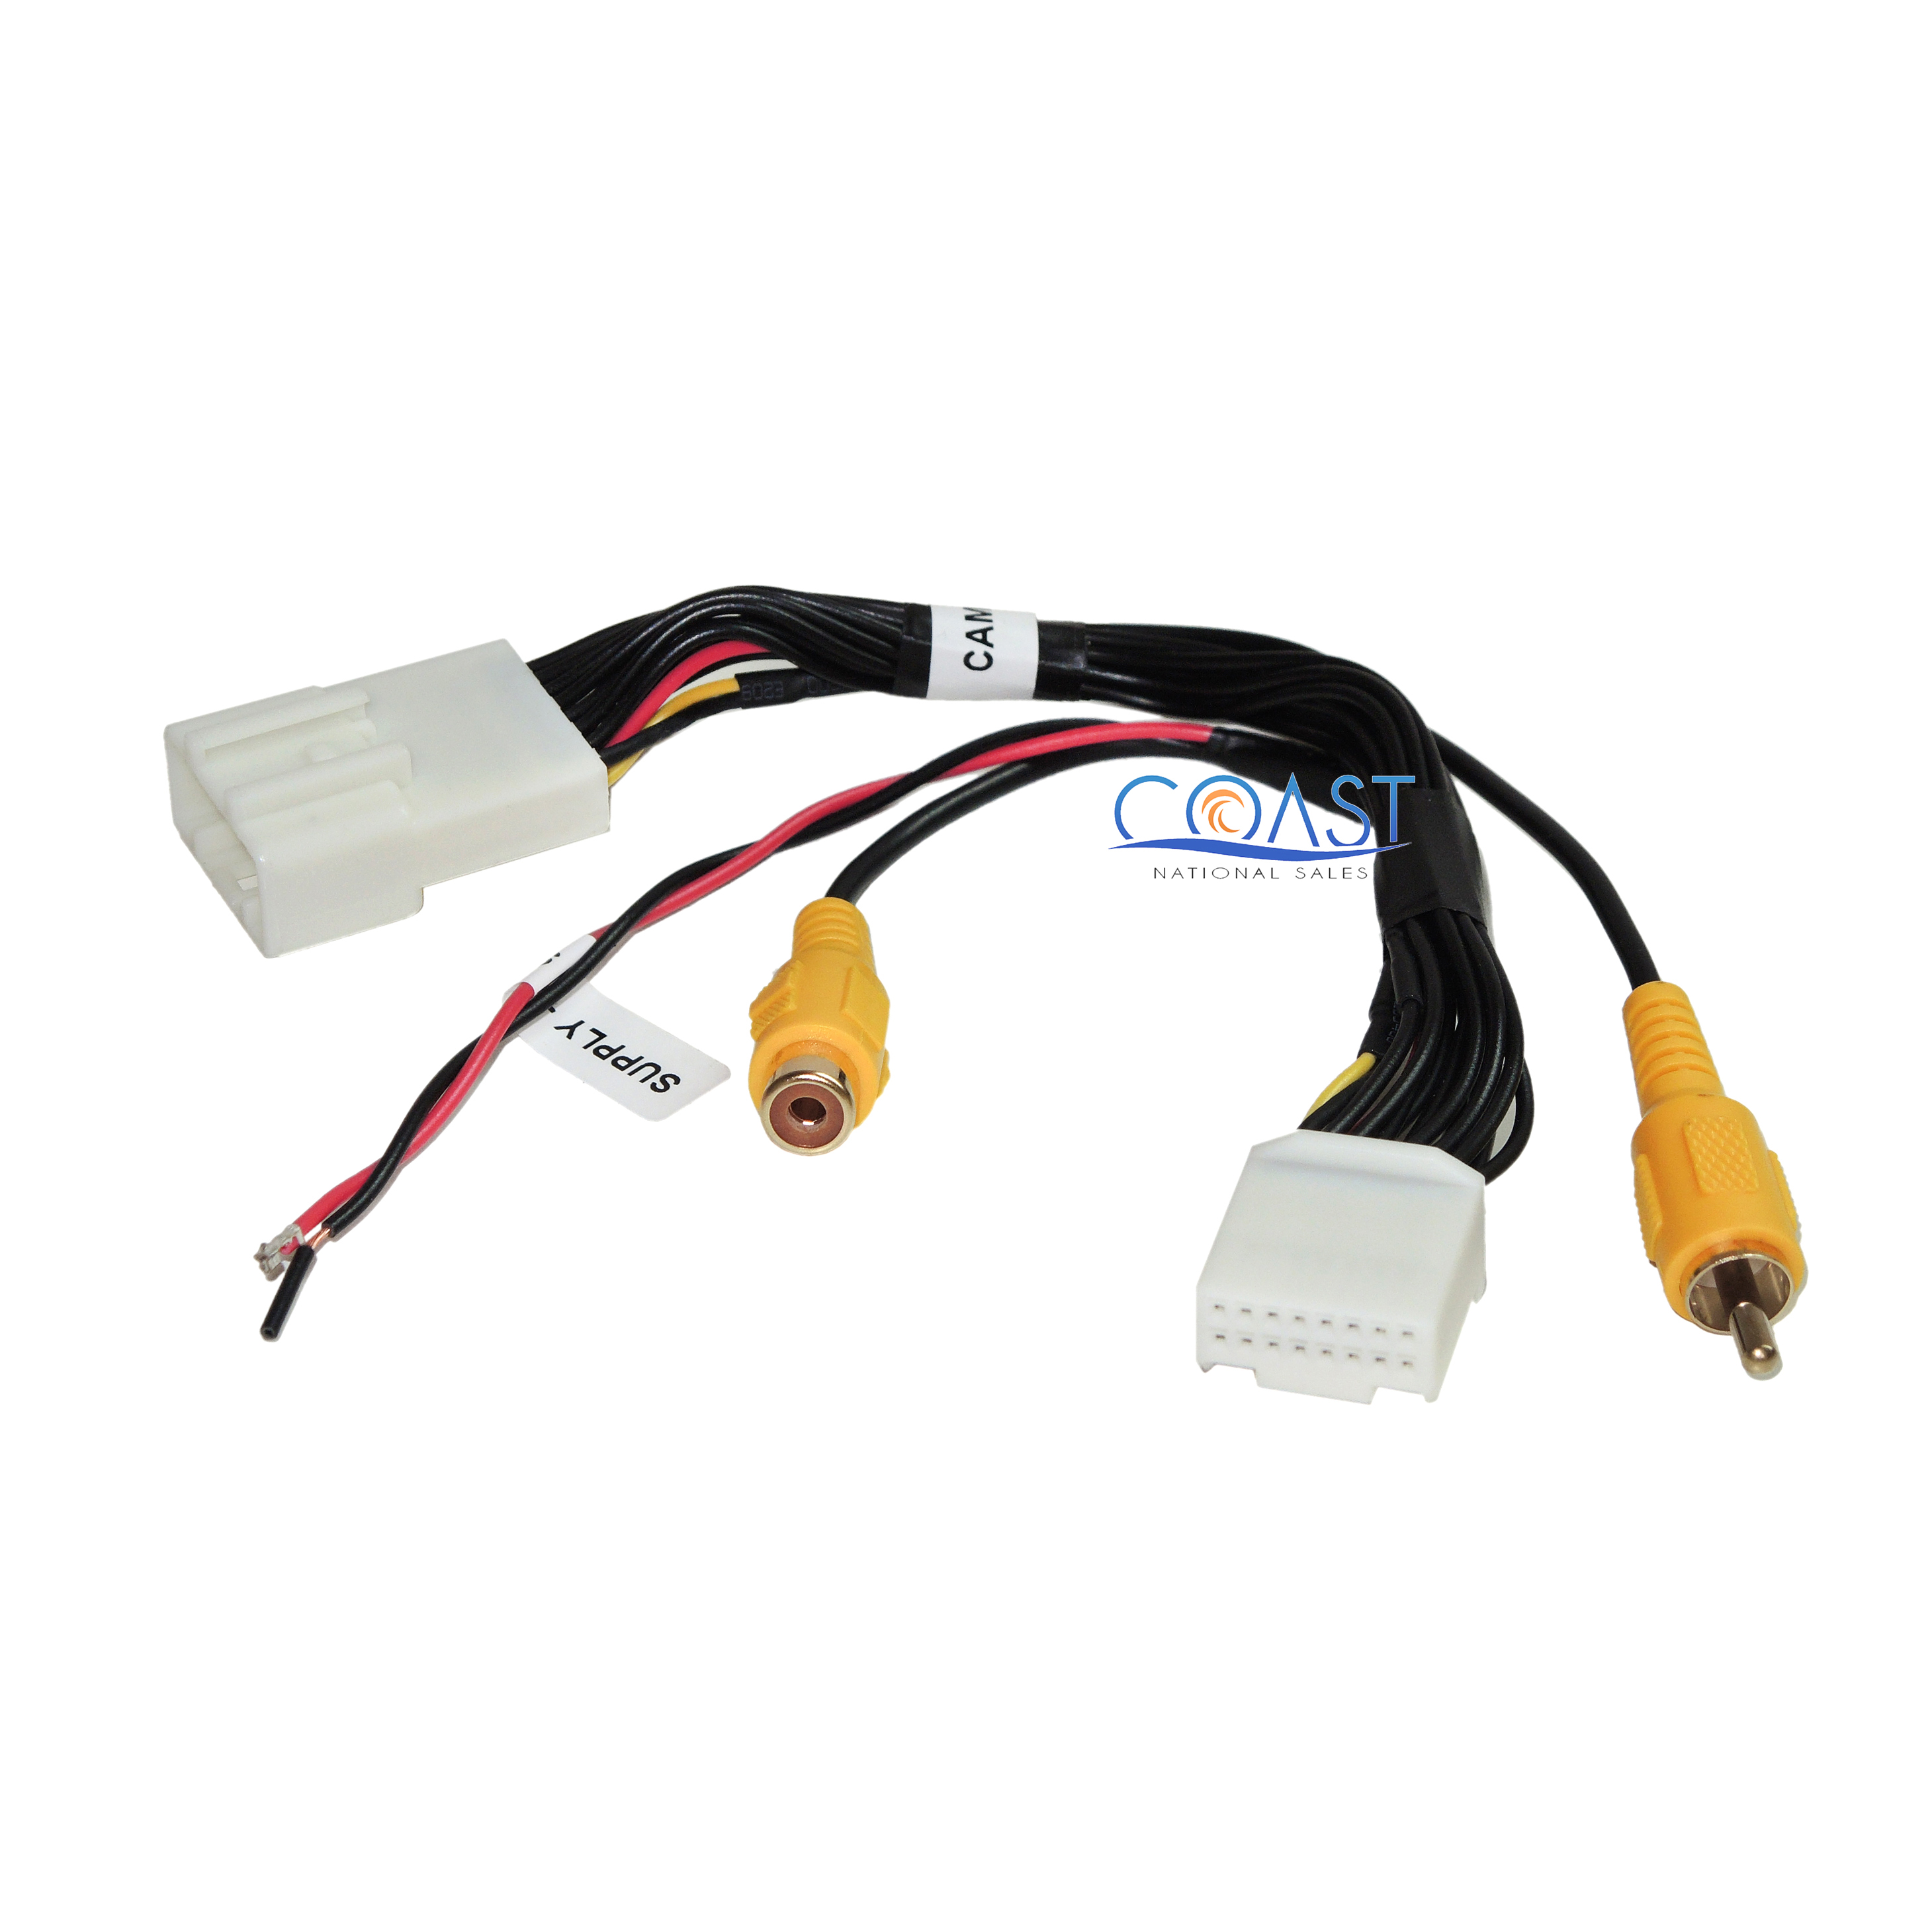 Backup Camera Wiring Harness on generator wiring, backup cameras accidents vehicles graphics, backup cameras for atvs, backup lights wiring diagram for toyota tacoma, backup cameras for trucks, backup cameras for camaro, backup cameras for tahoe, backup cameras for suv, backup cameras for toyota sequoia,